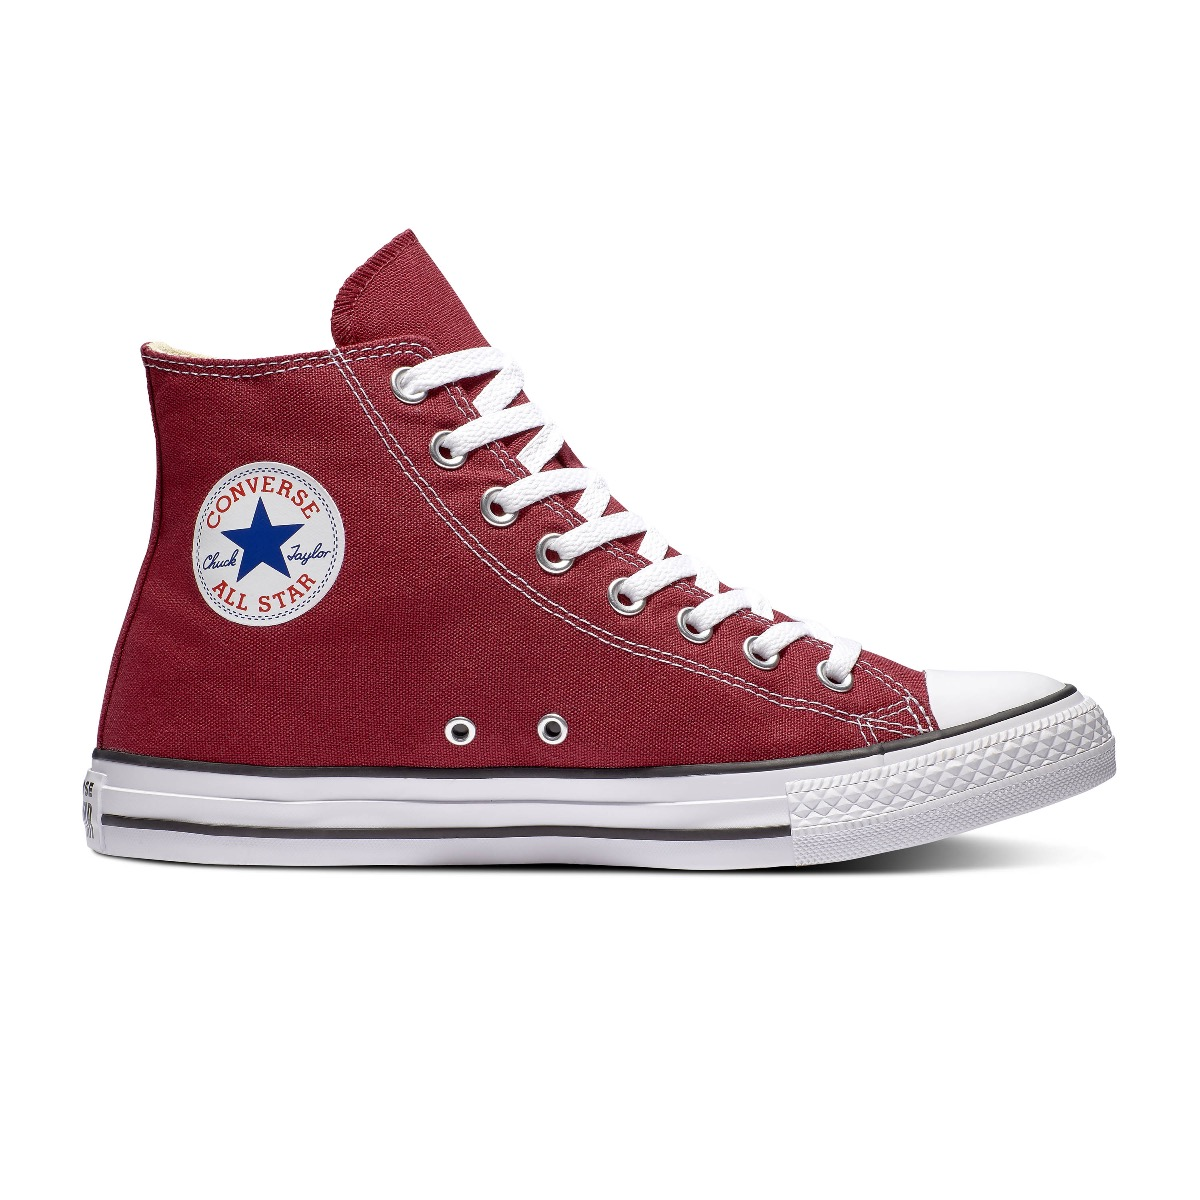 Converse All Stars Hoog Bordeaux Rood (Mt 35 t/m 46)-46